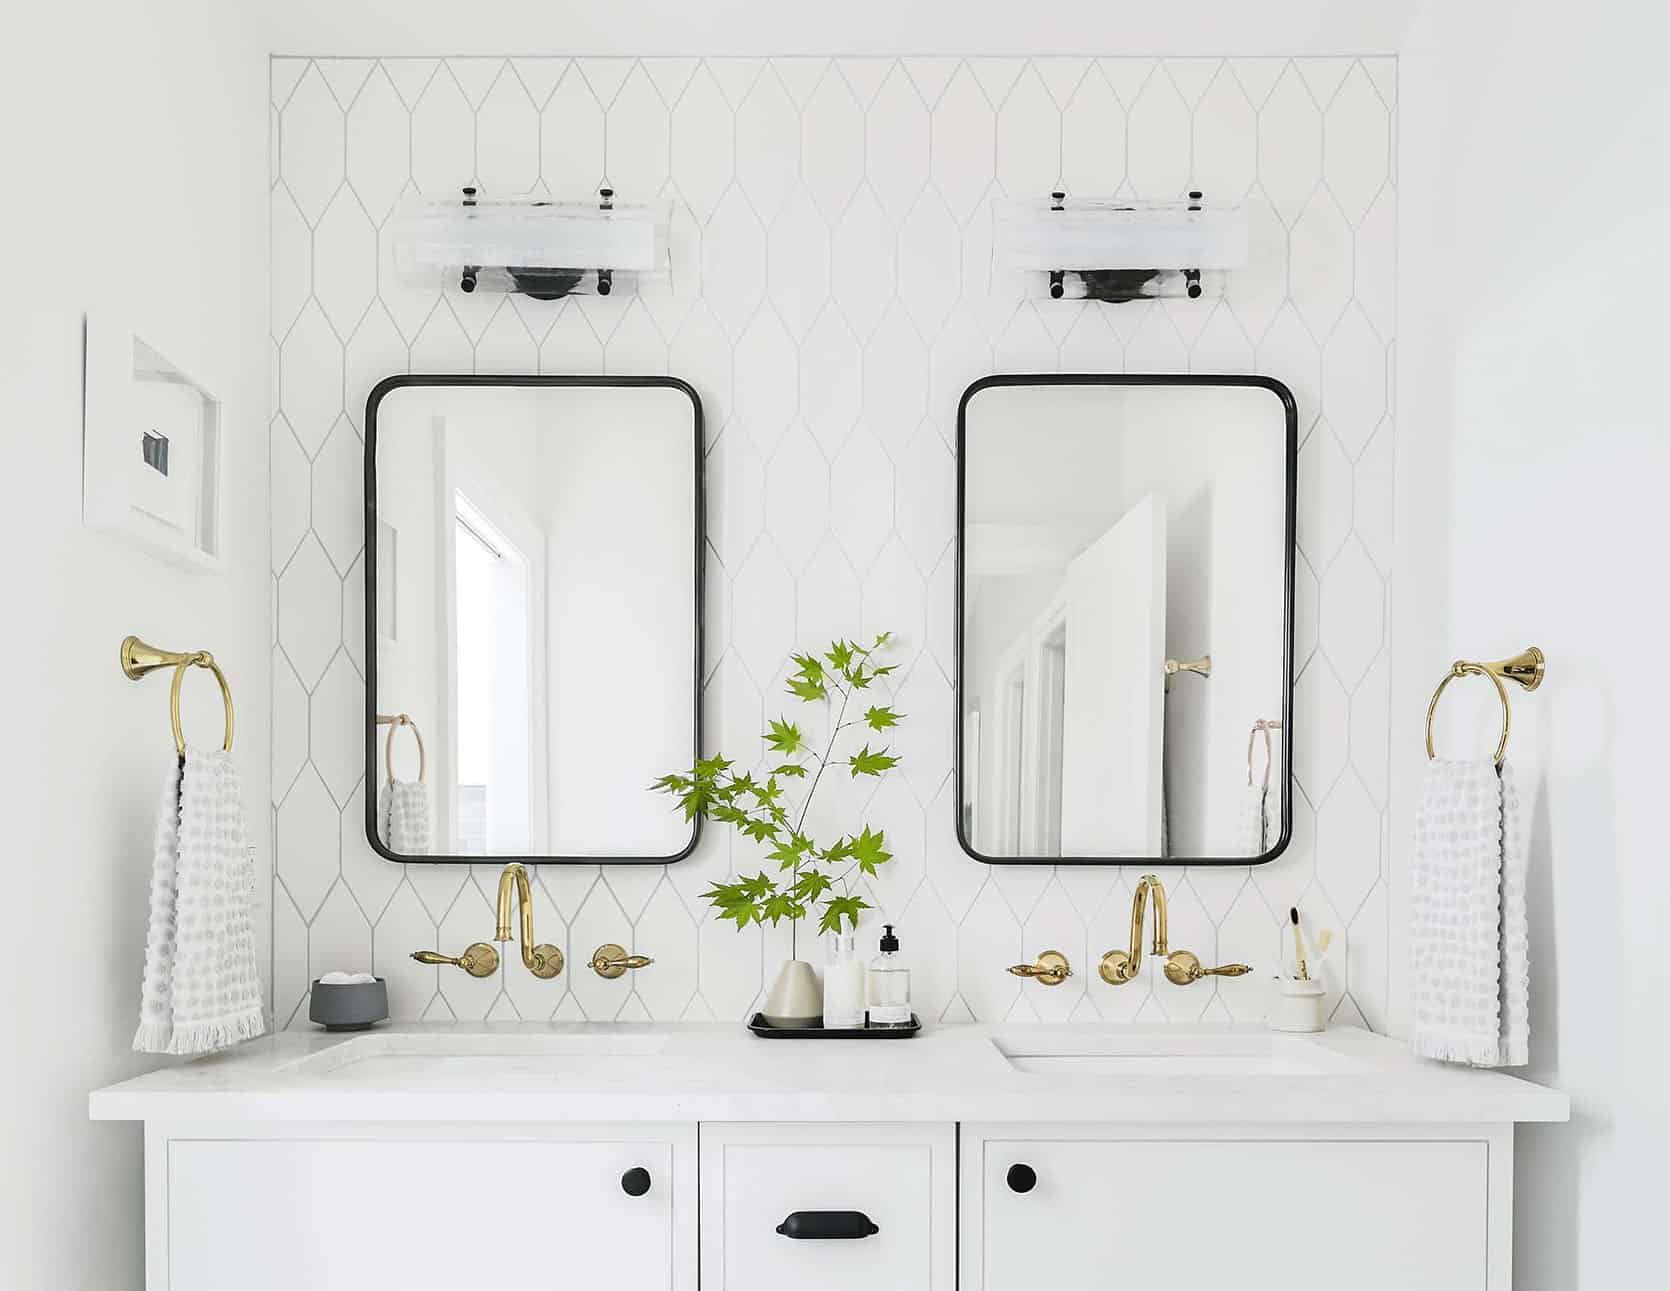 Design 101 How High To Hang Your Sconce In Every Room 48 Of Our Favorite Picks Emily Henderson In 2020 Bathroom Decor Apartment Bathroom Sconces Wall Mounted Lamps